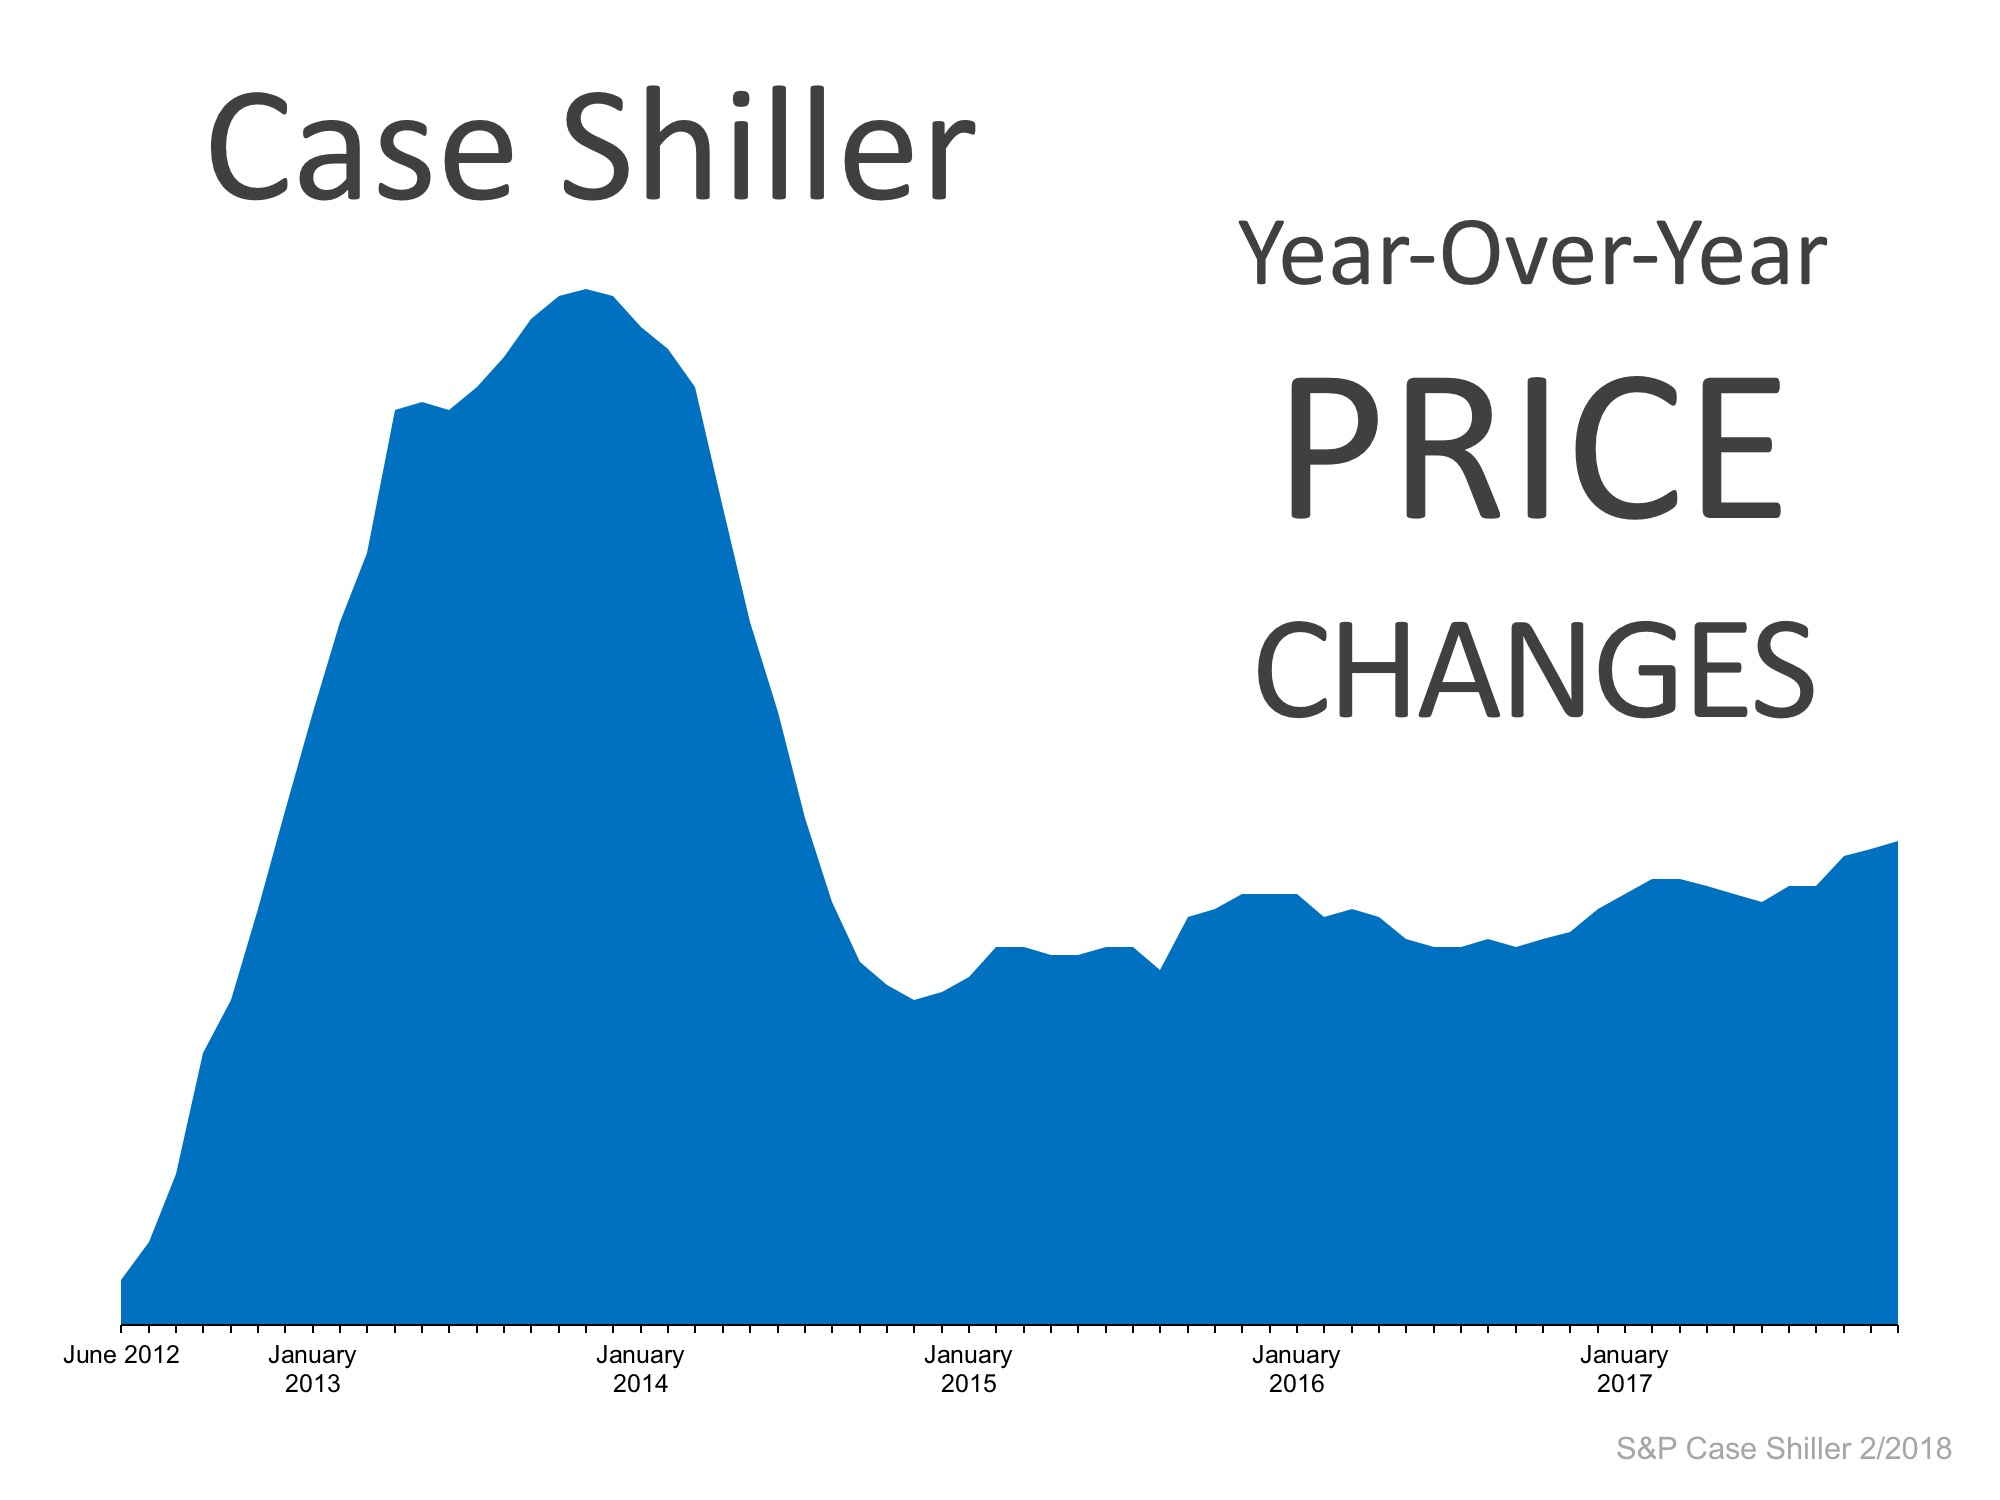 Year Over Year Price Changes